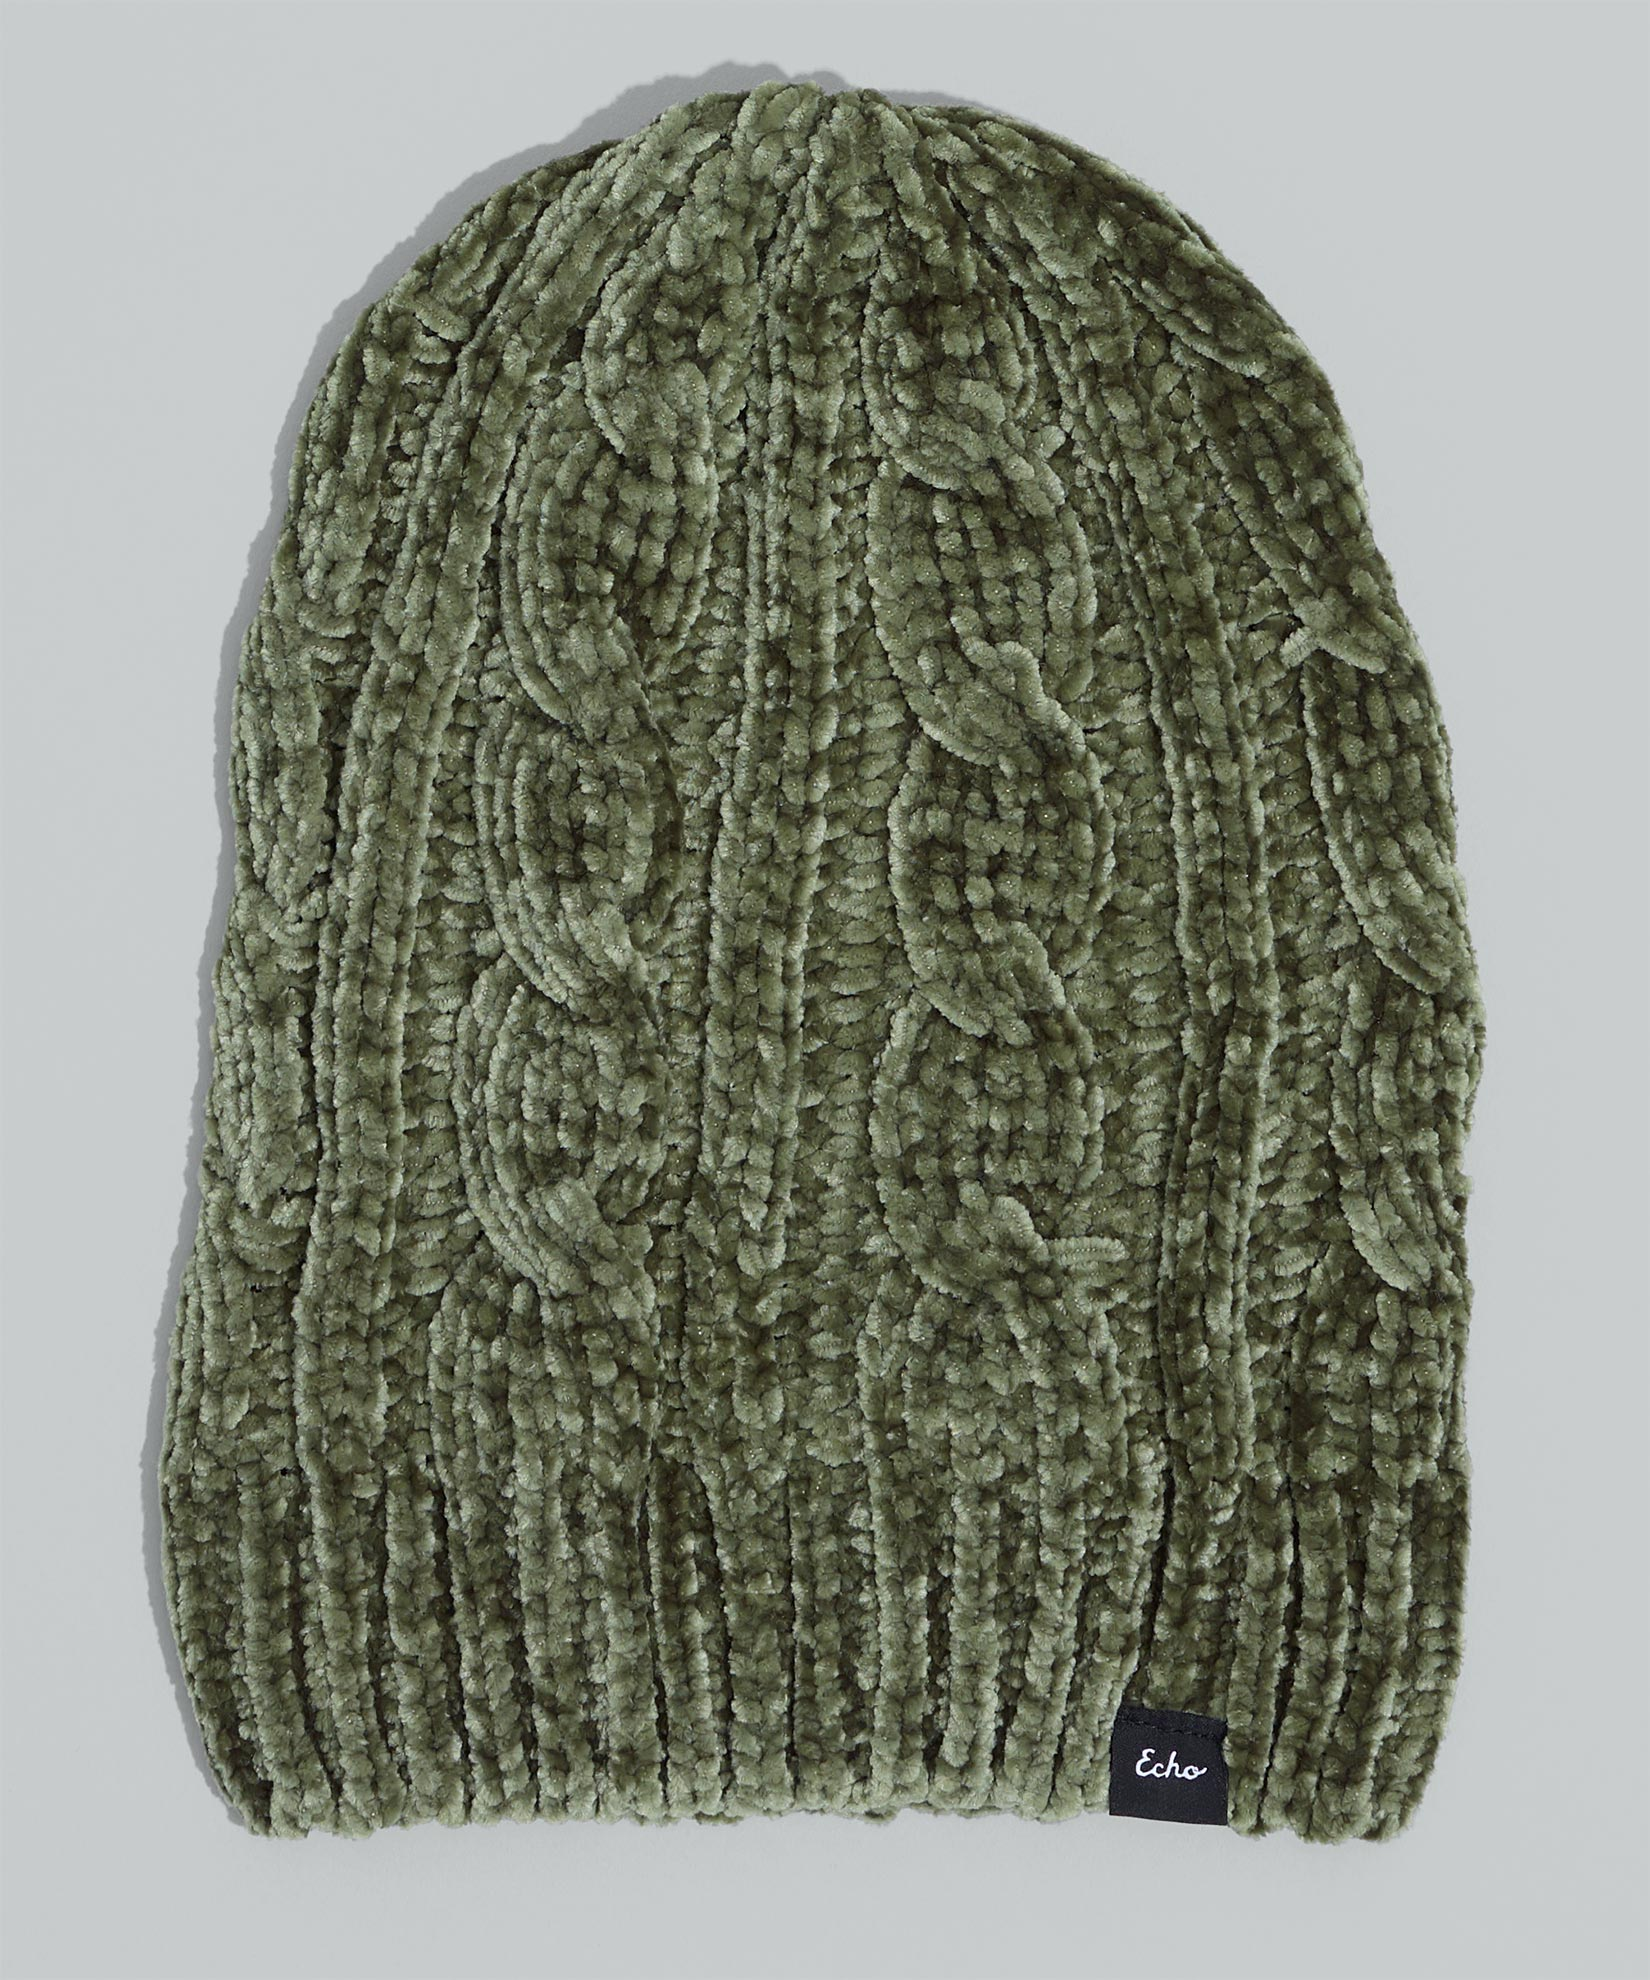 Olive - Chenille Slouchy Hat with Cables